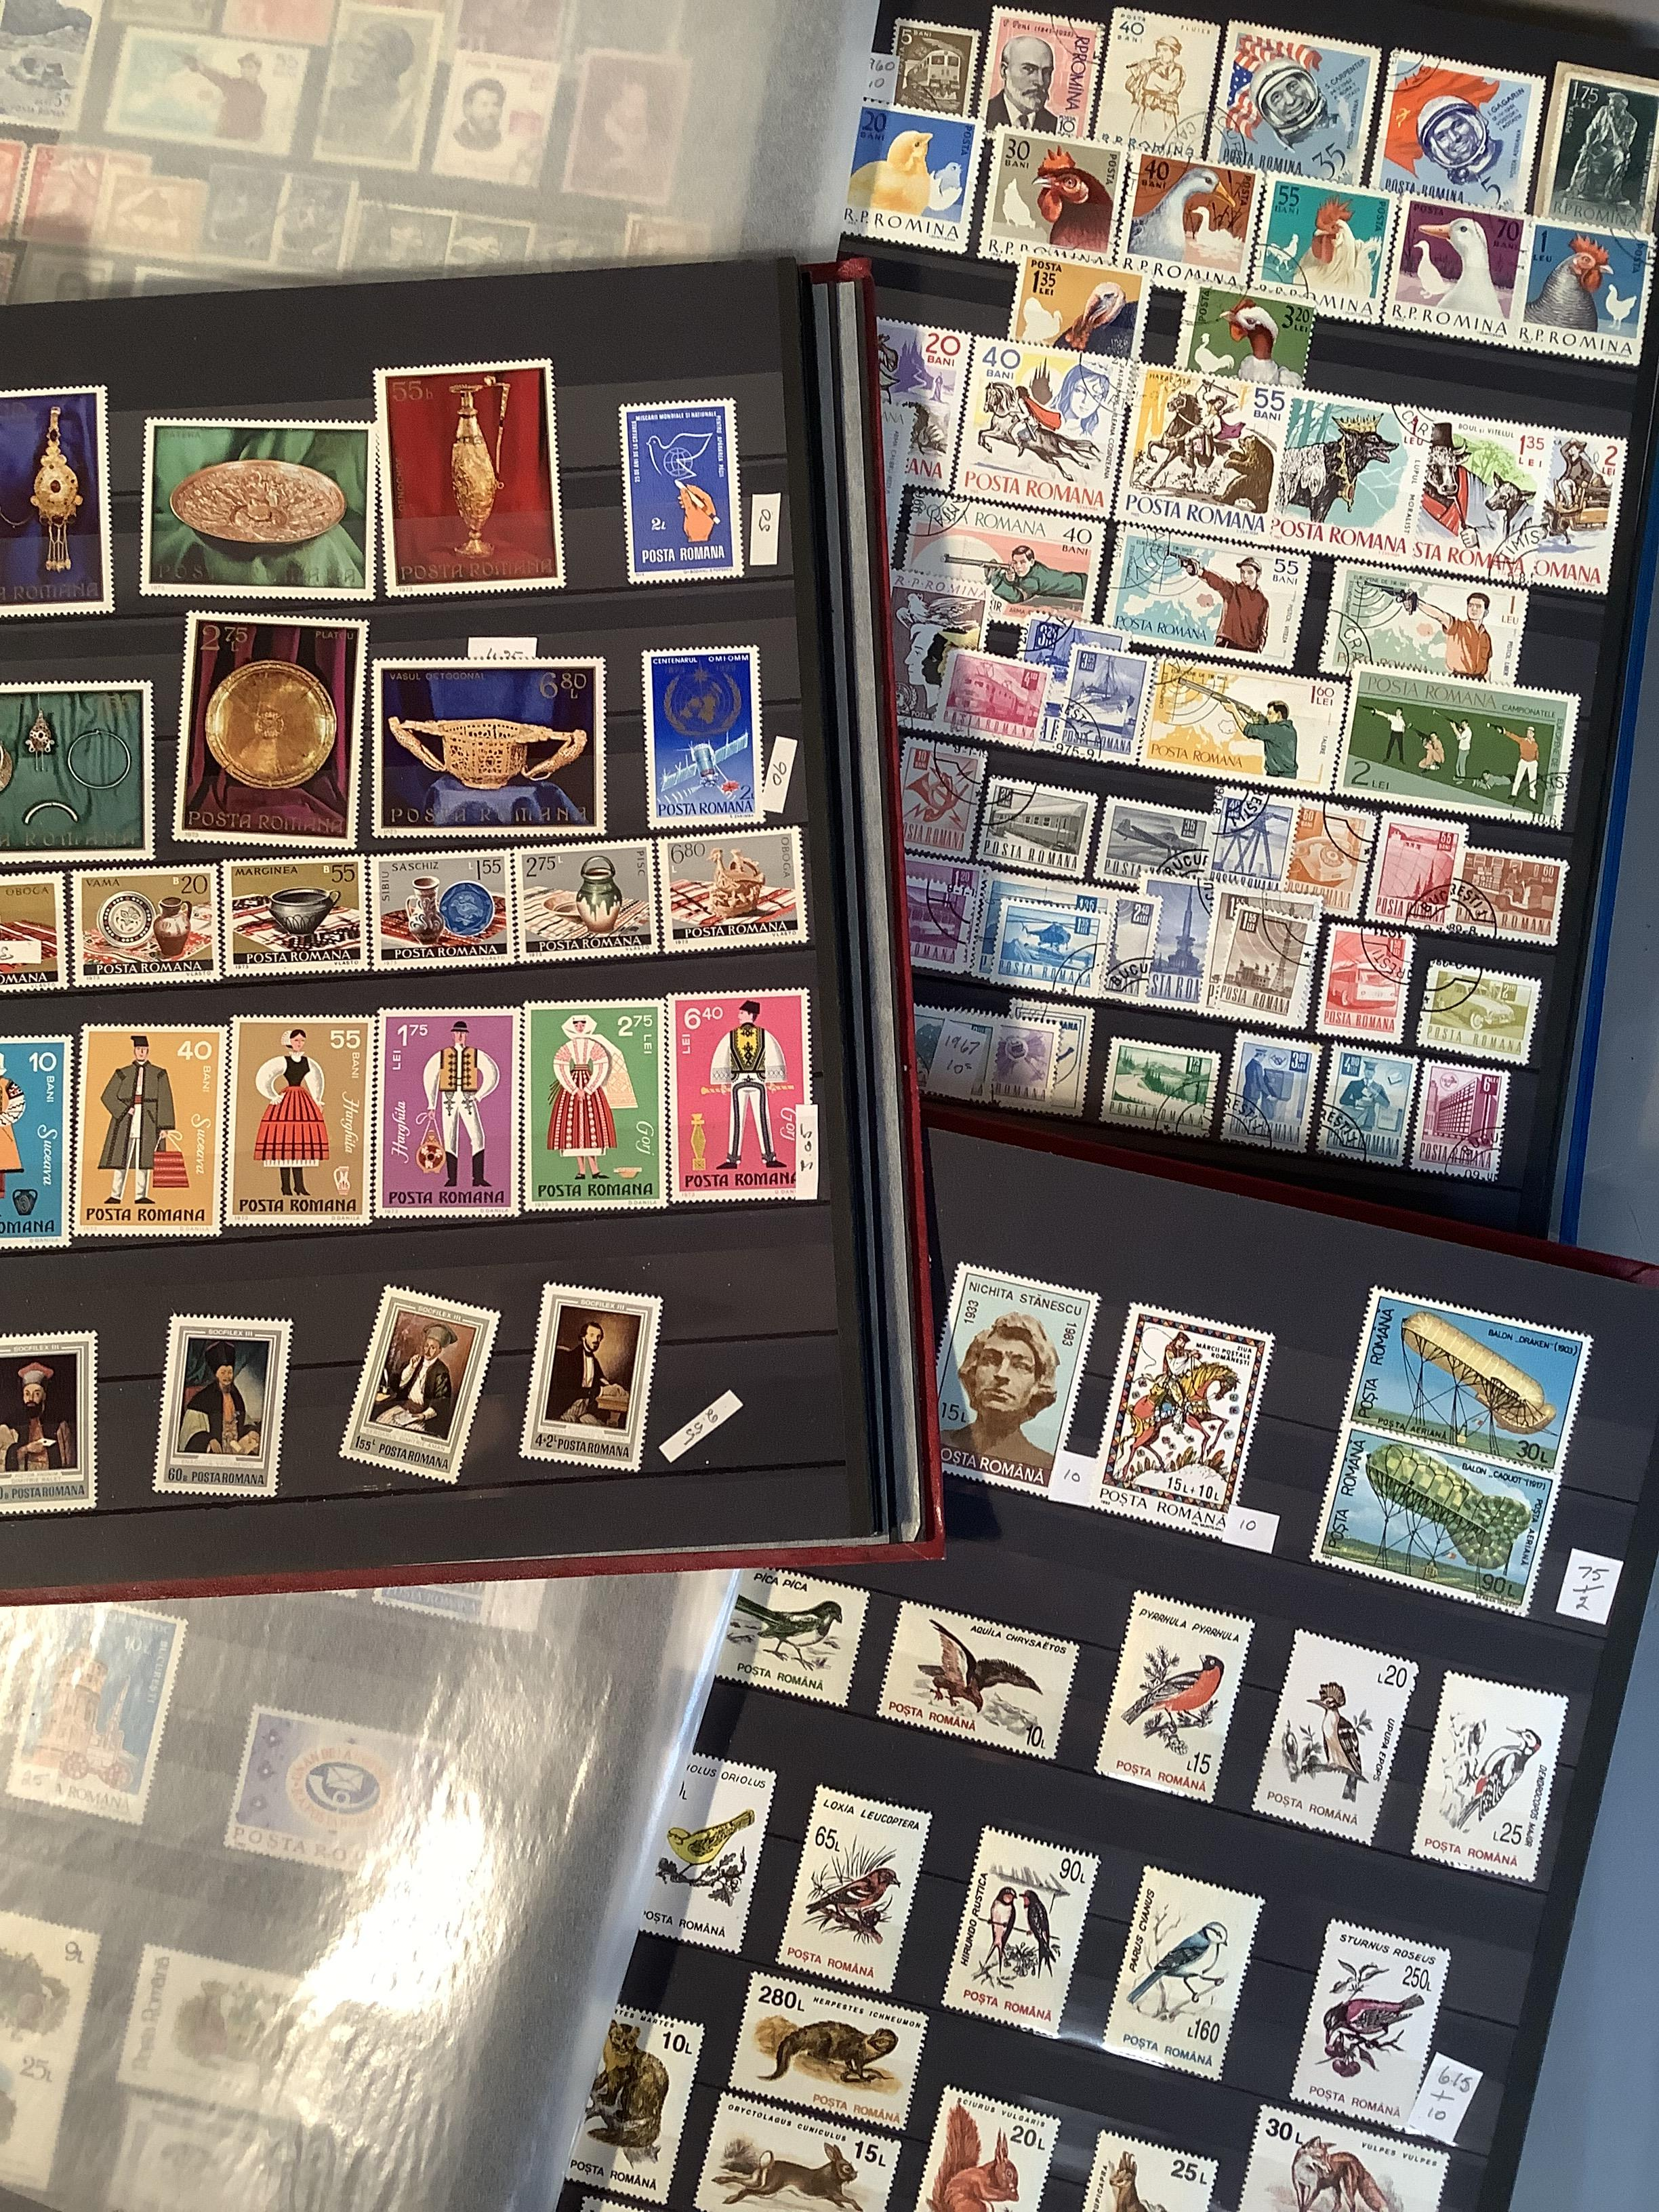 Three Stock Books with a large collection of Romanian postage stamps dating from 1925 to 1990s, a